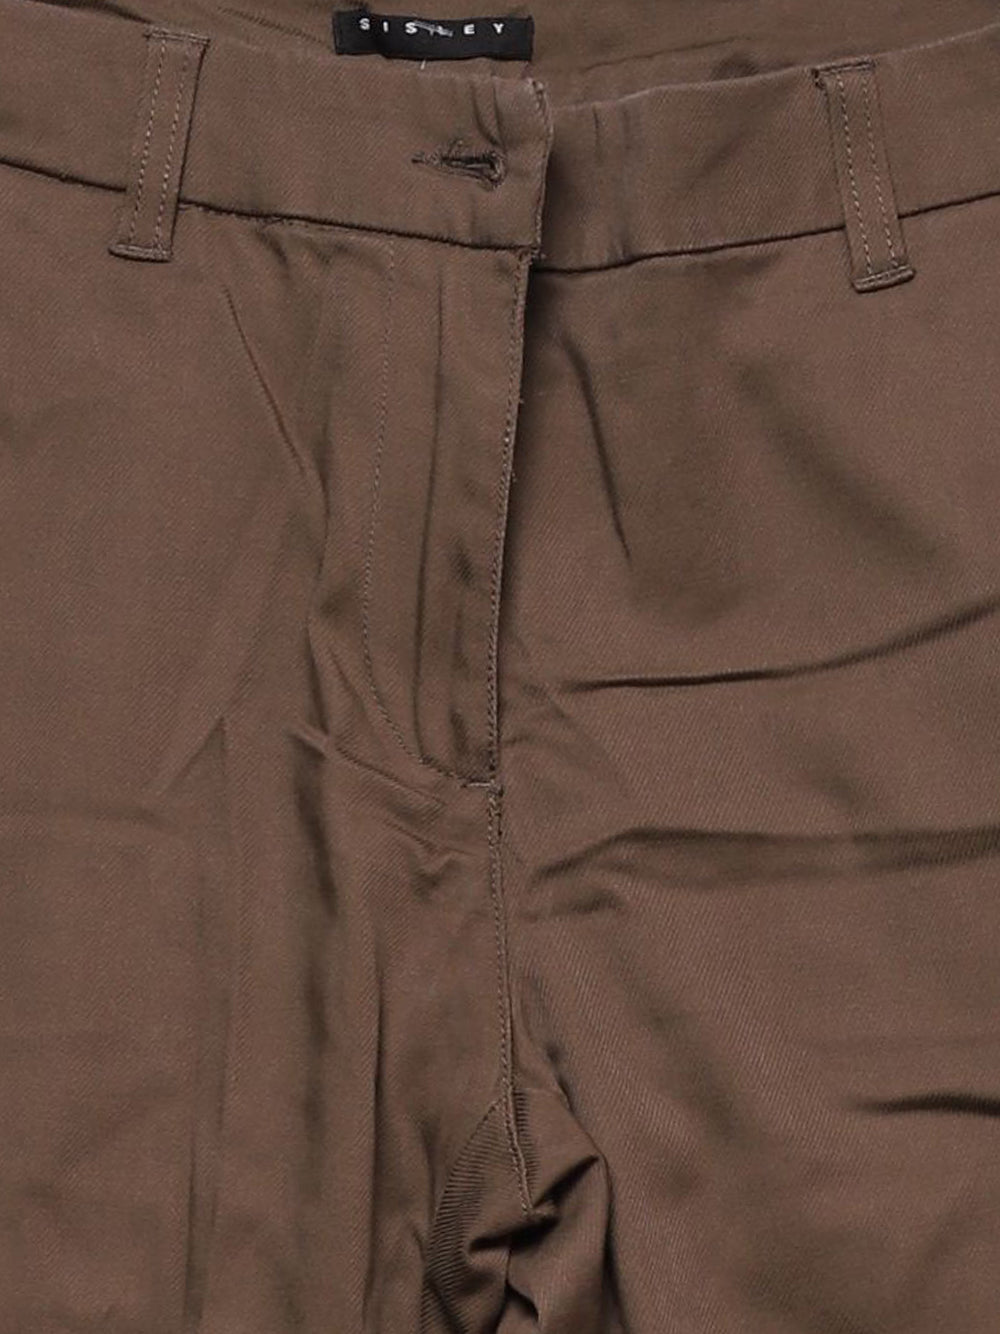 Detail photo of Preloved Sisley Green Woman's trousers - size 8/S